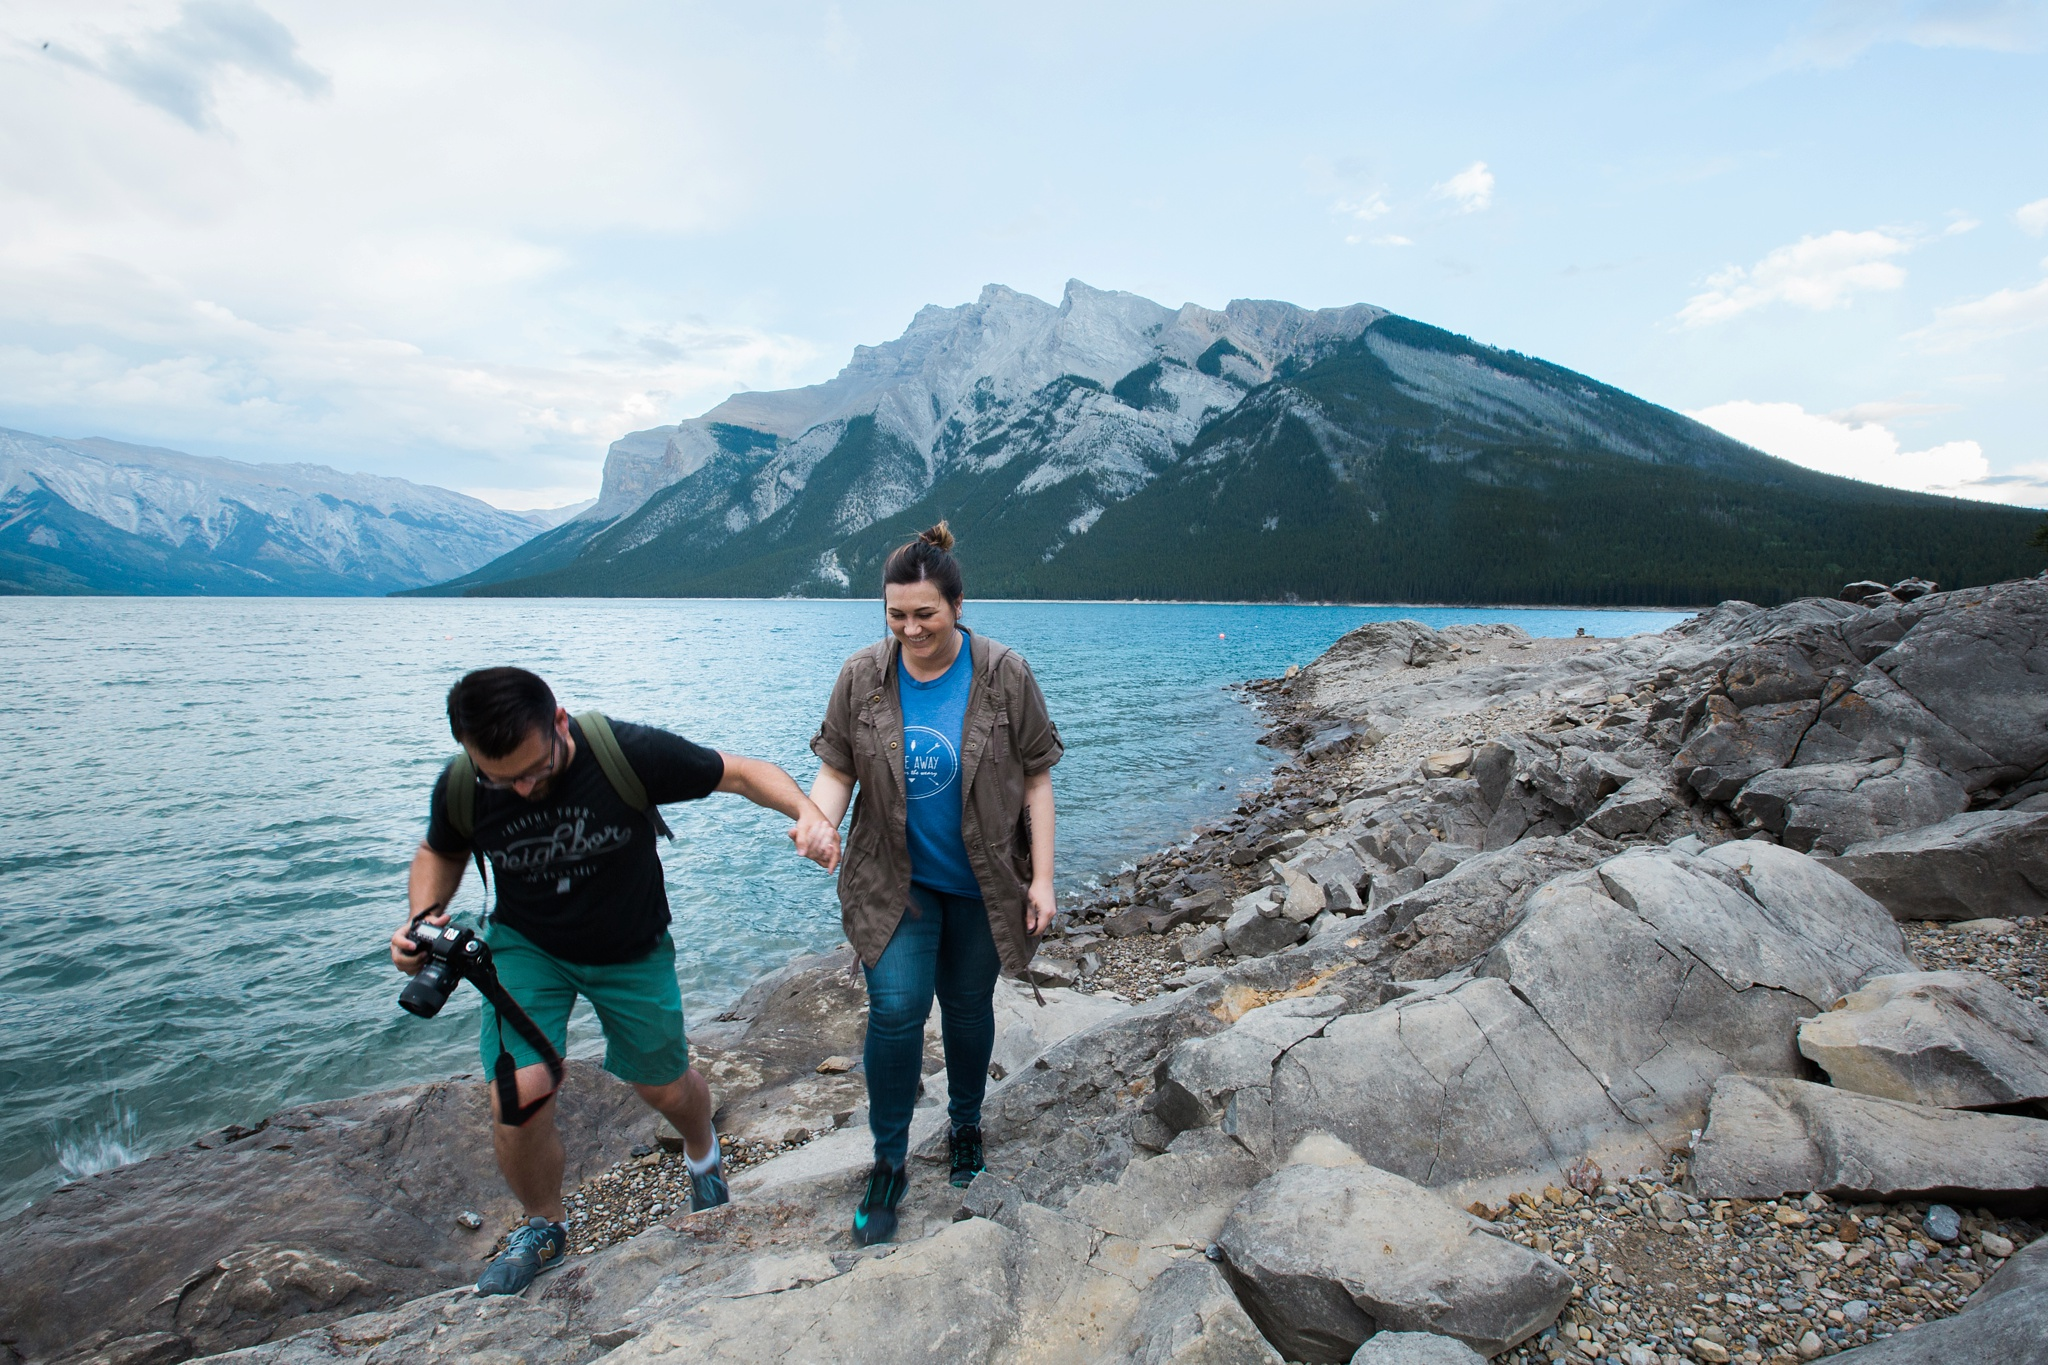 traveling_photographer_calgary_banff_0013.jpg